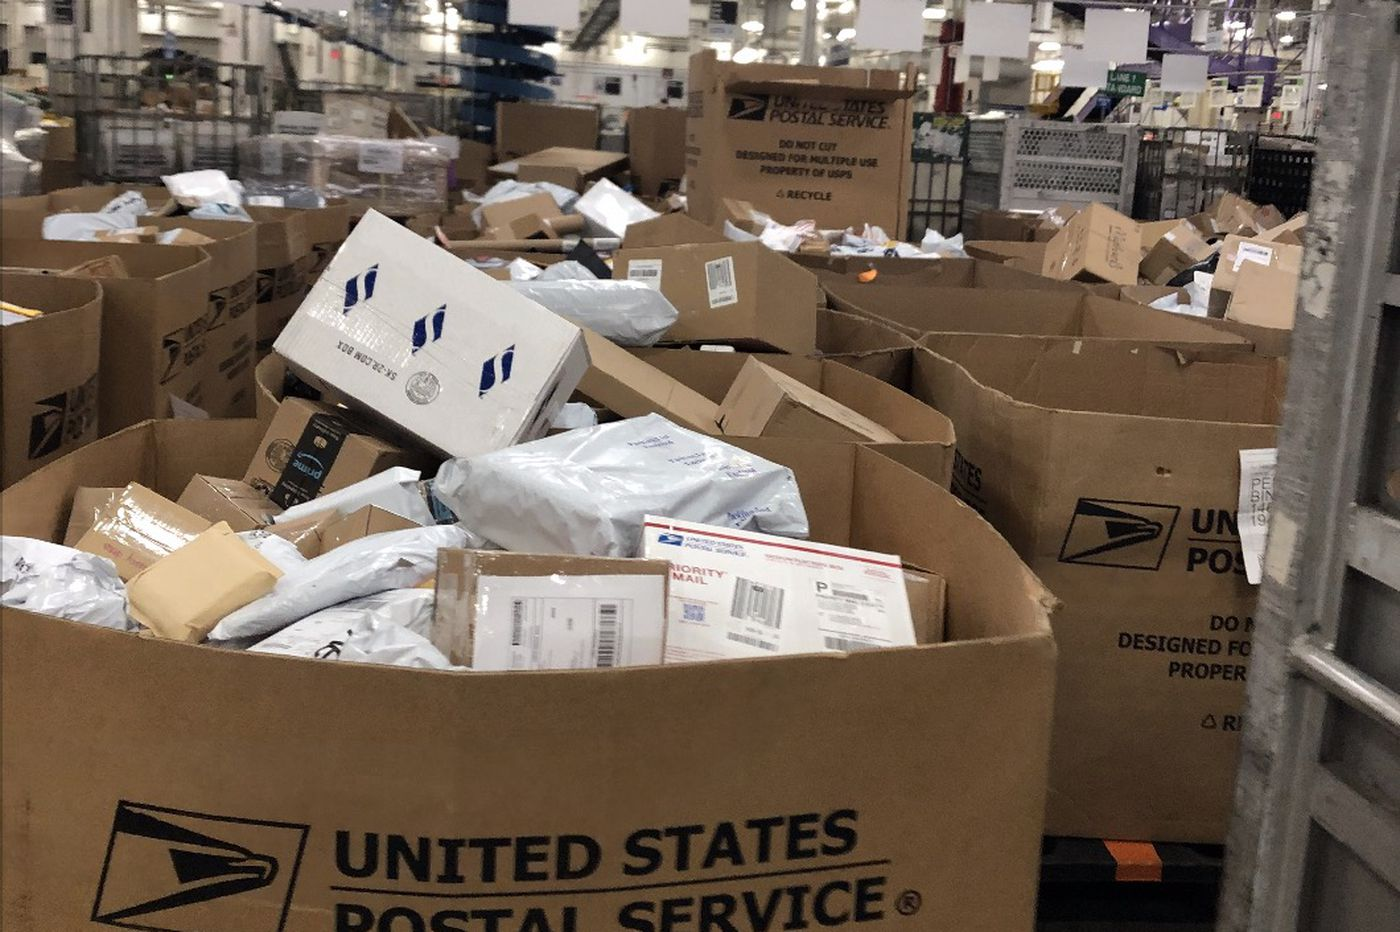 Thousands of delayed packages are piled up at Pa. Postal Service facilities: 'You're not gonna get your Christmas presents'